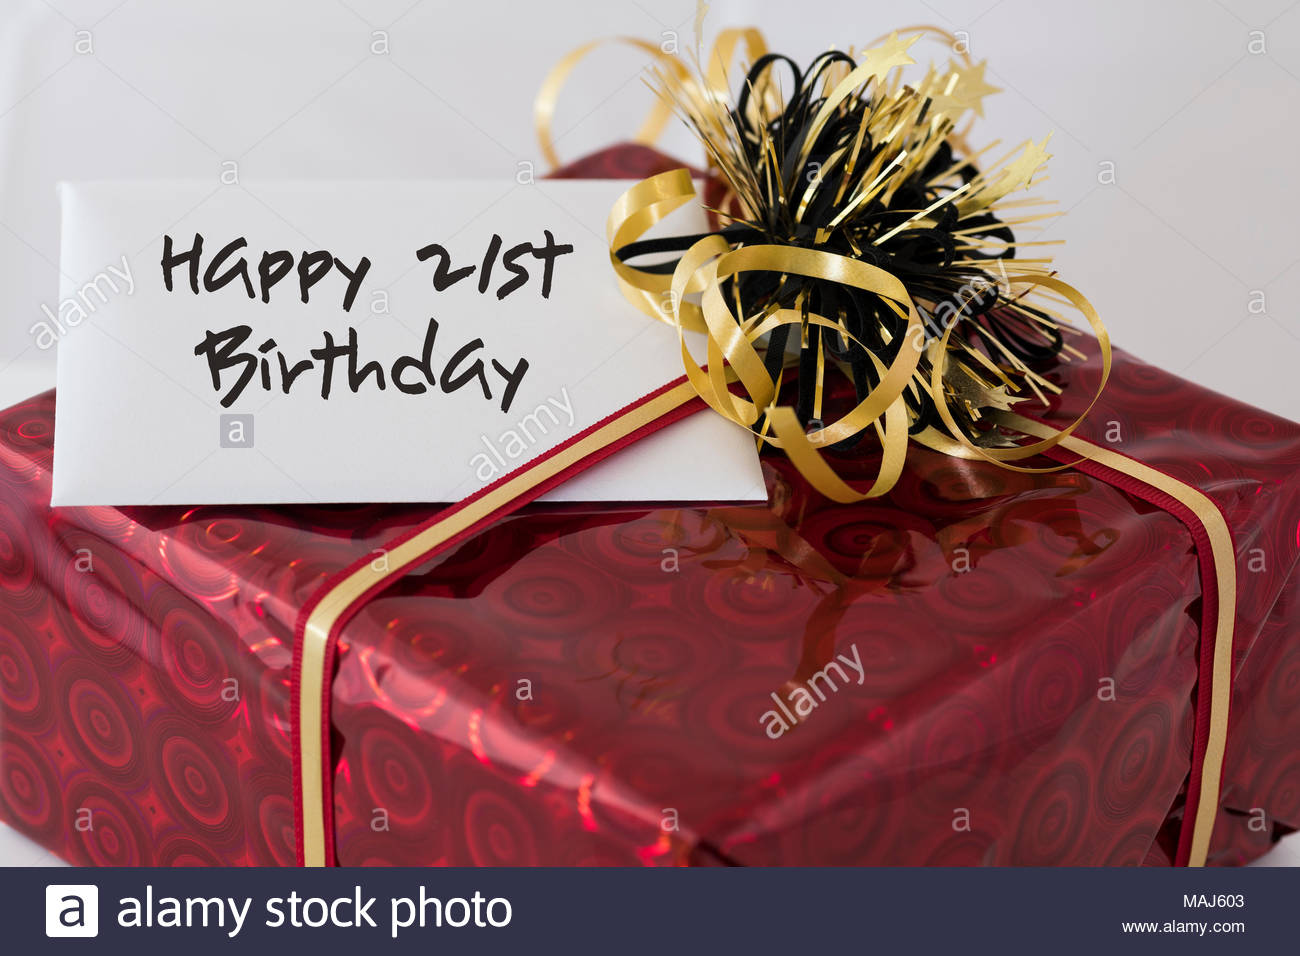 Wrapped Present With The Wording Happy 21st Birthday Written On Gift Tag Dorset England UK